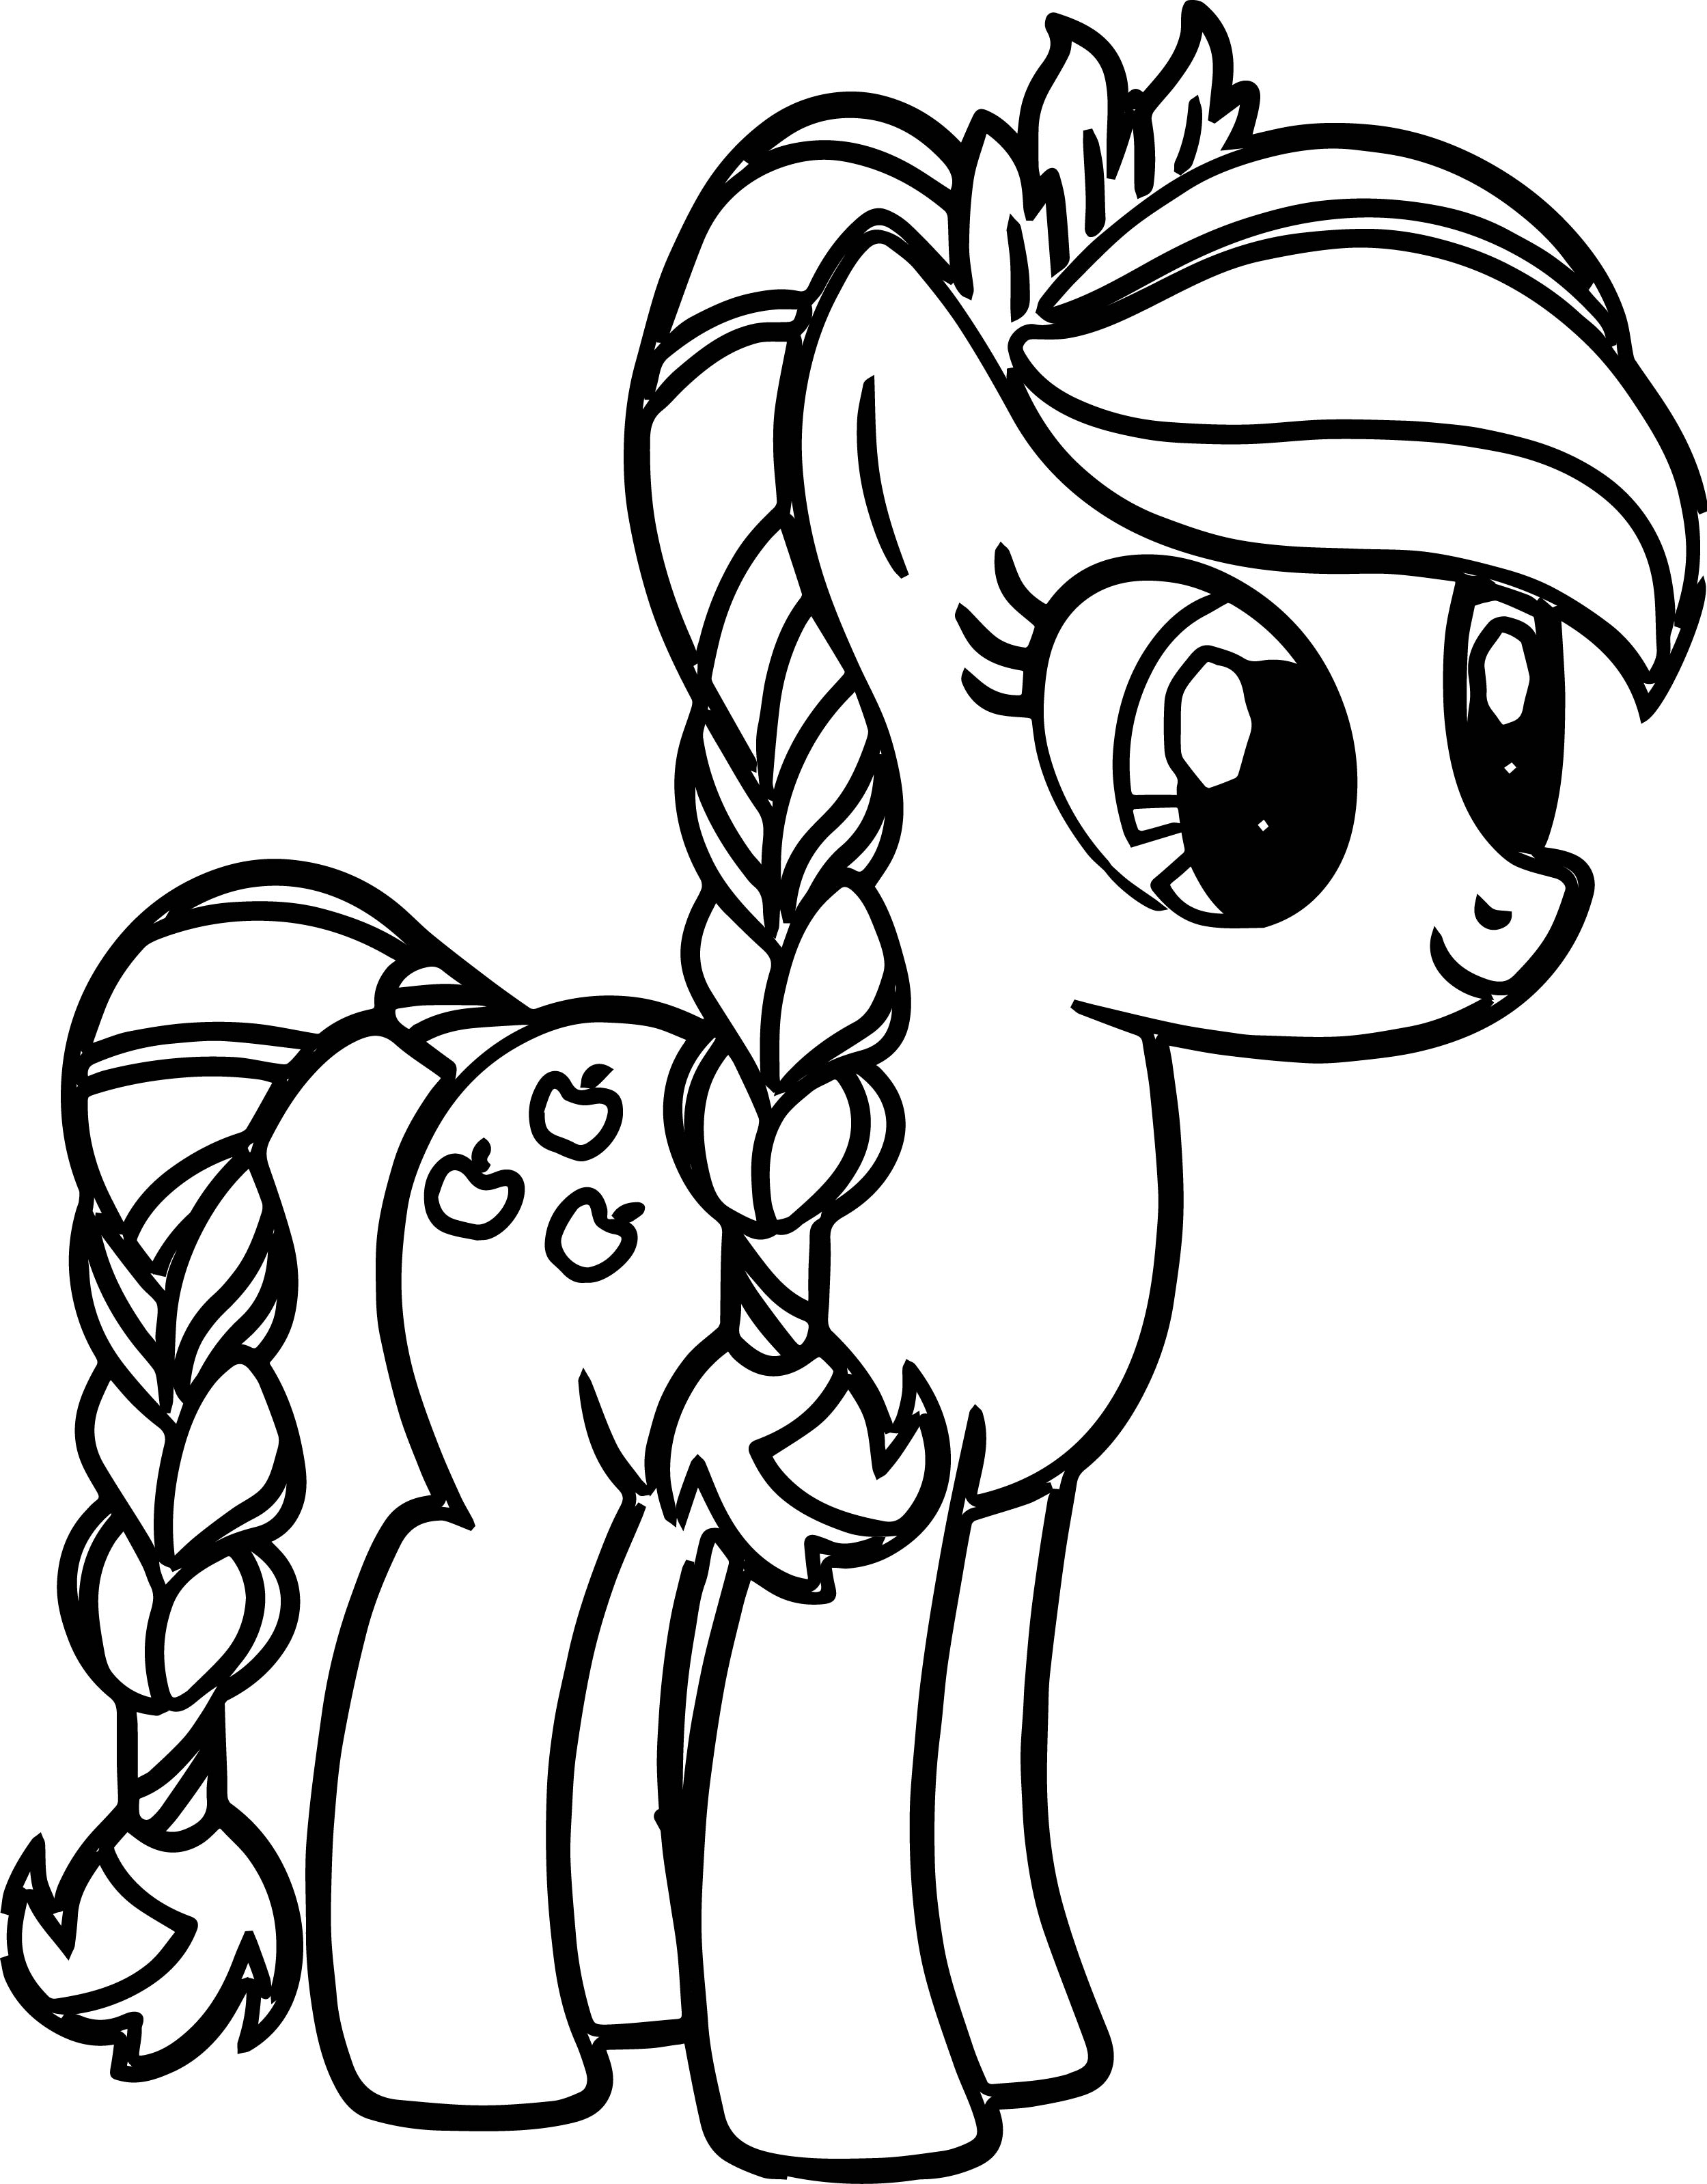 Young my little pony coloring pages - Pony Cartoon My Little Pony Coloring Pages